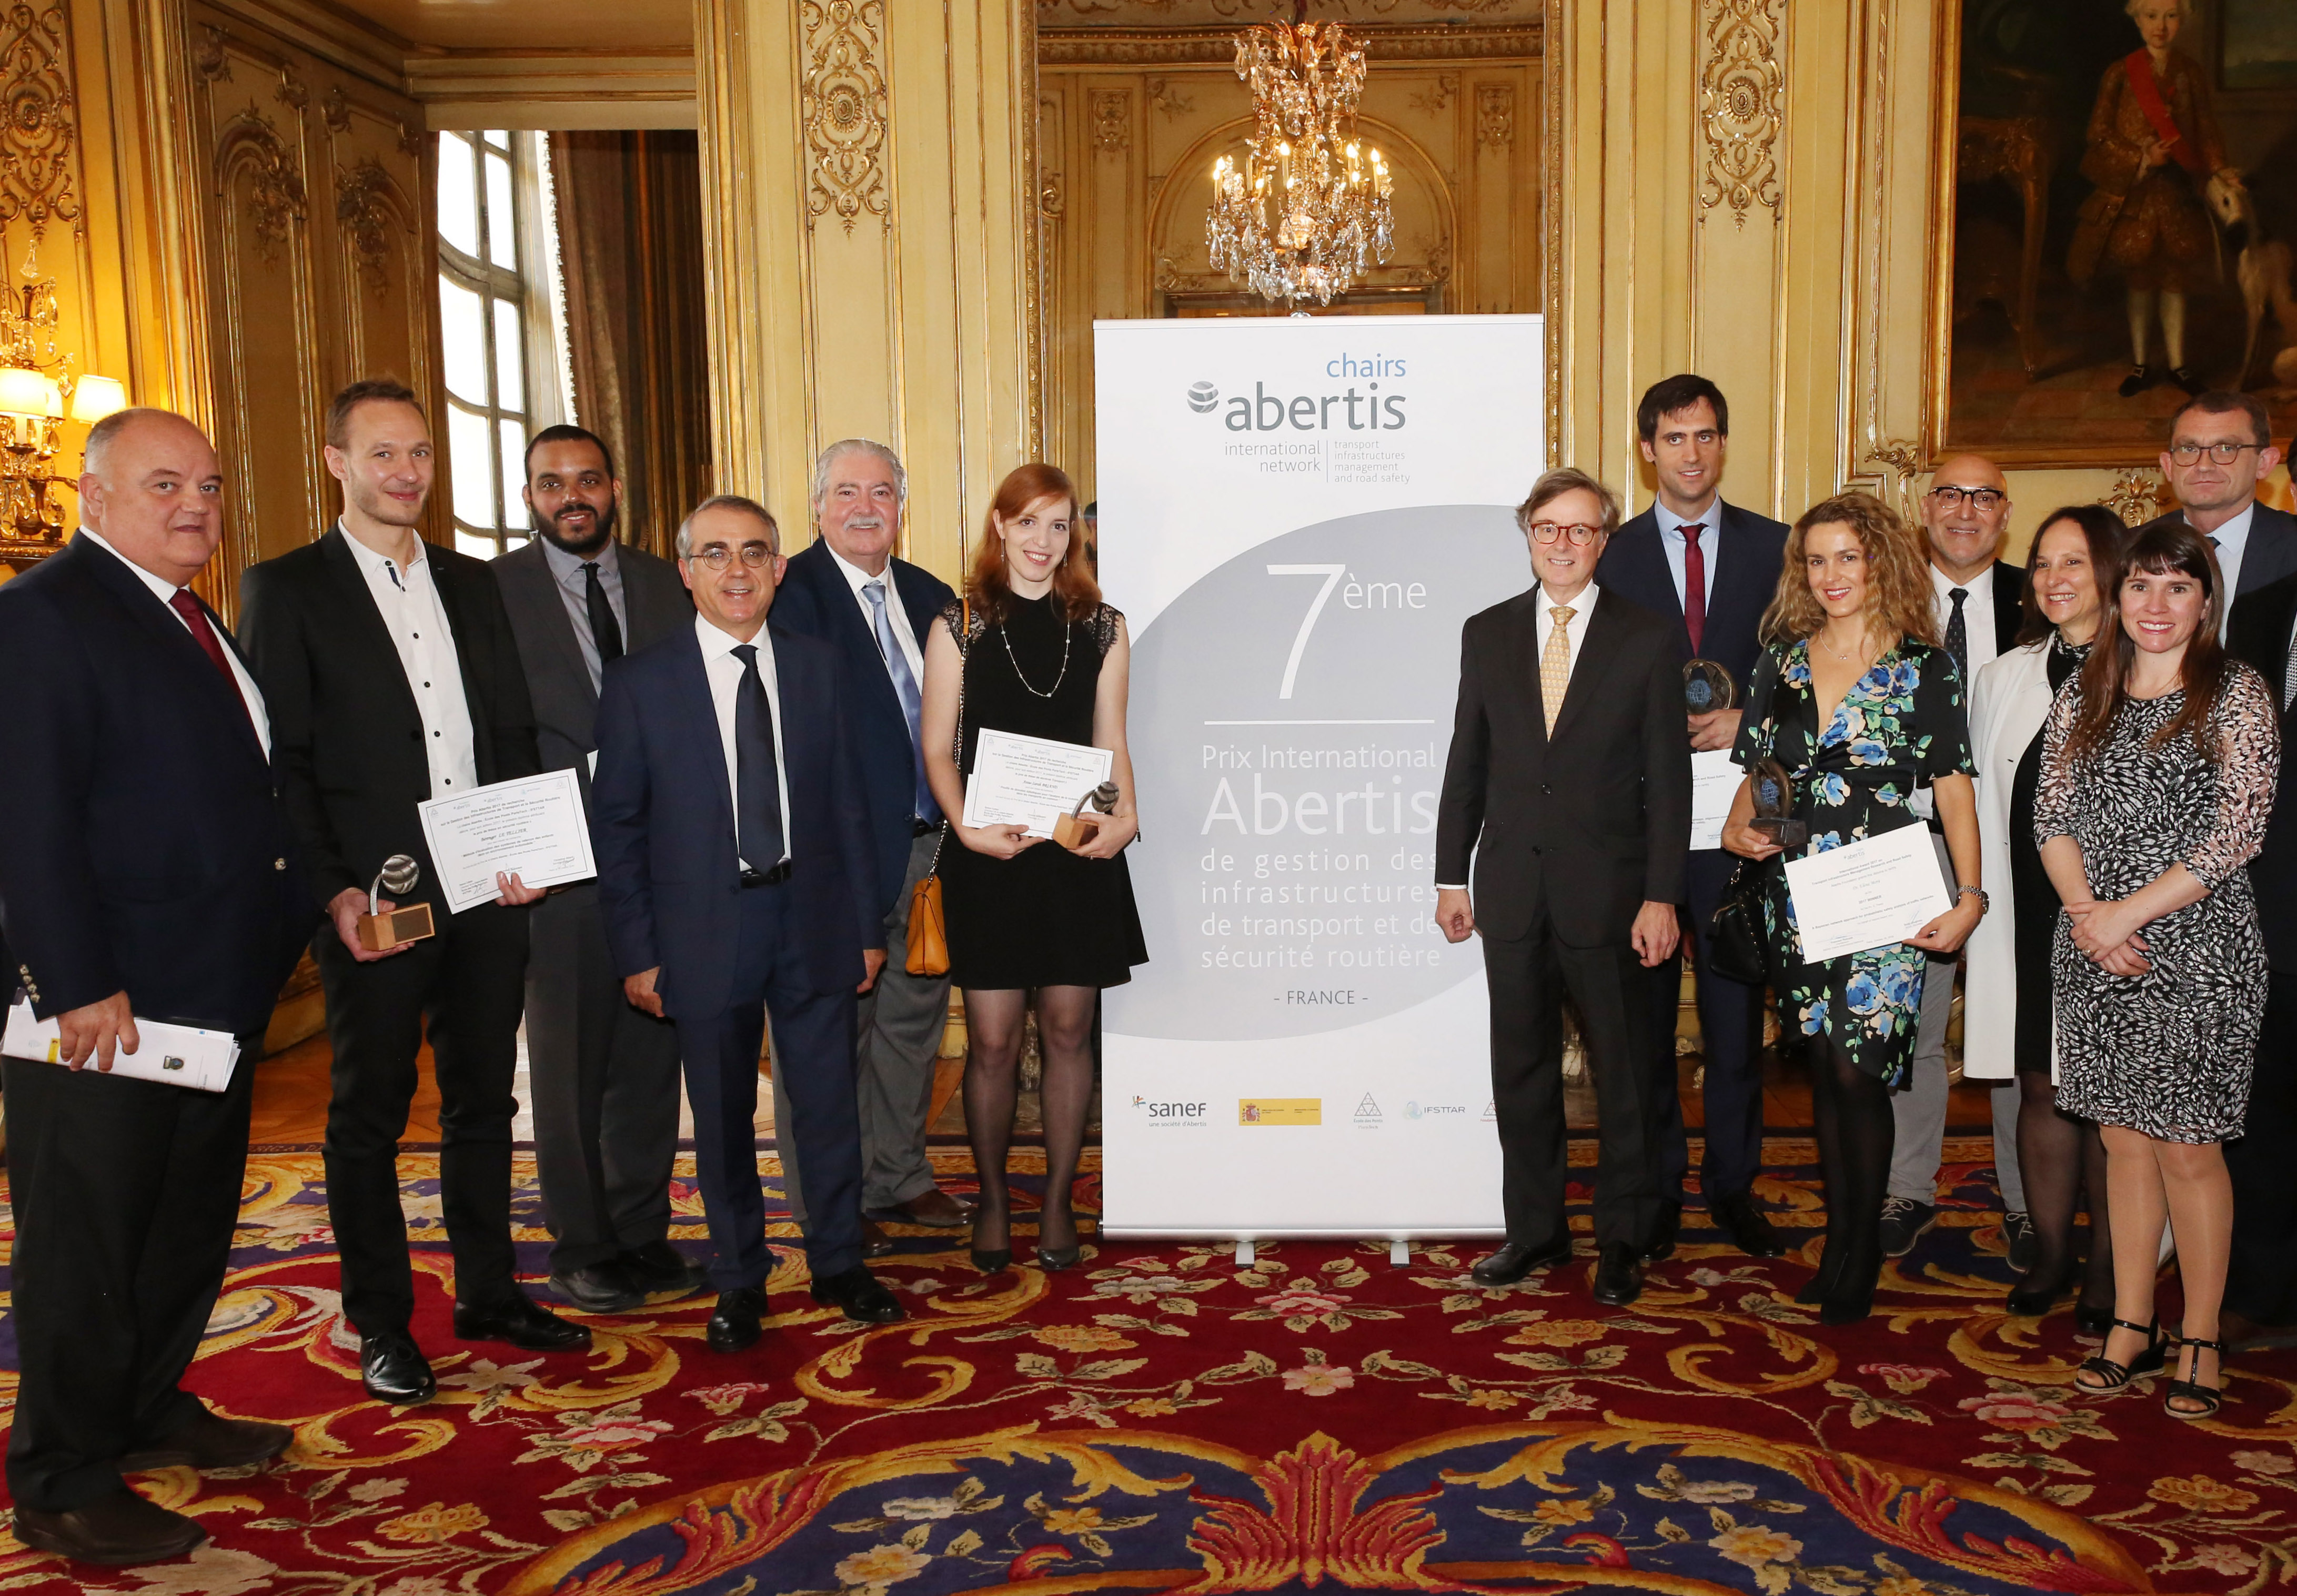 The Abertis Chair awards the VII International Prize for Infrastructure Management and Road Safety in Paris, France